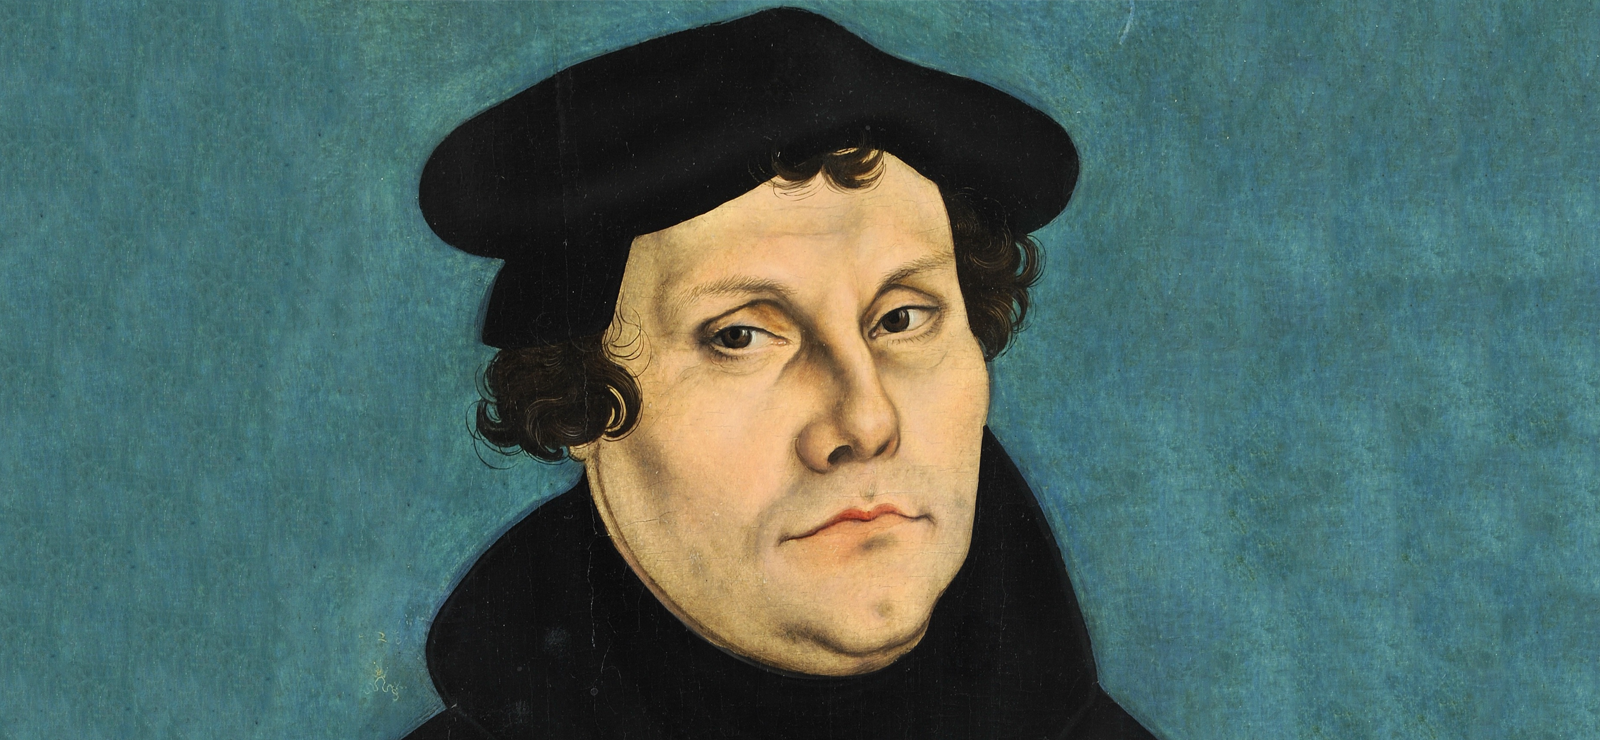 [Reformation and Beyond]